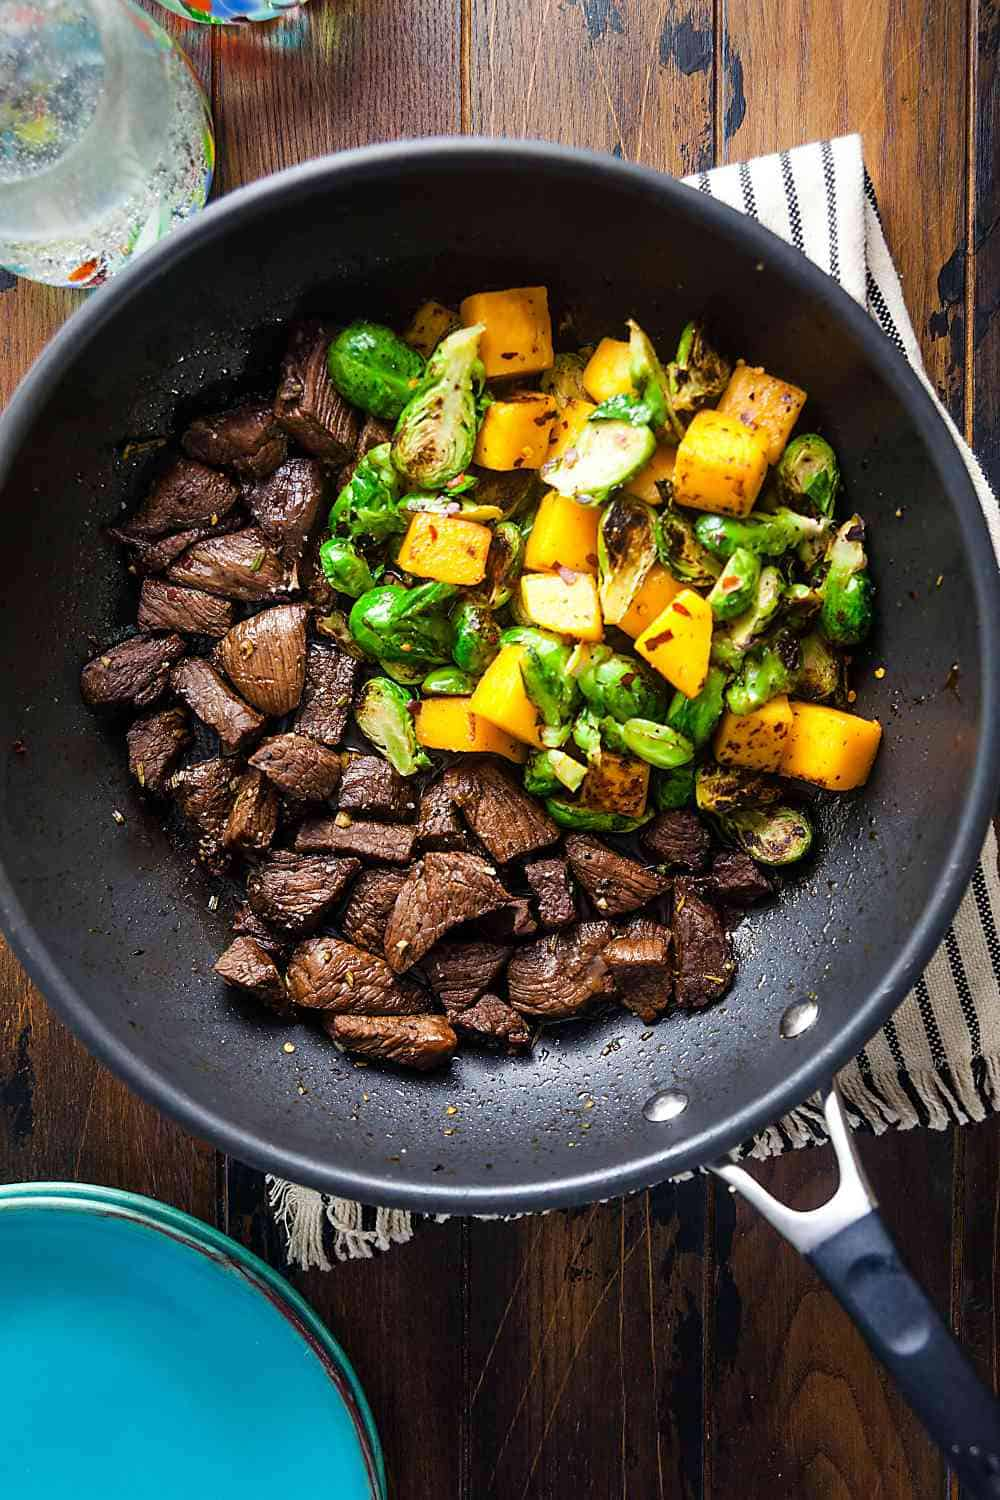 steak tips, butternut squash, and Brussels sprouts in a skillet